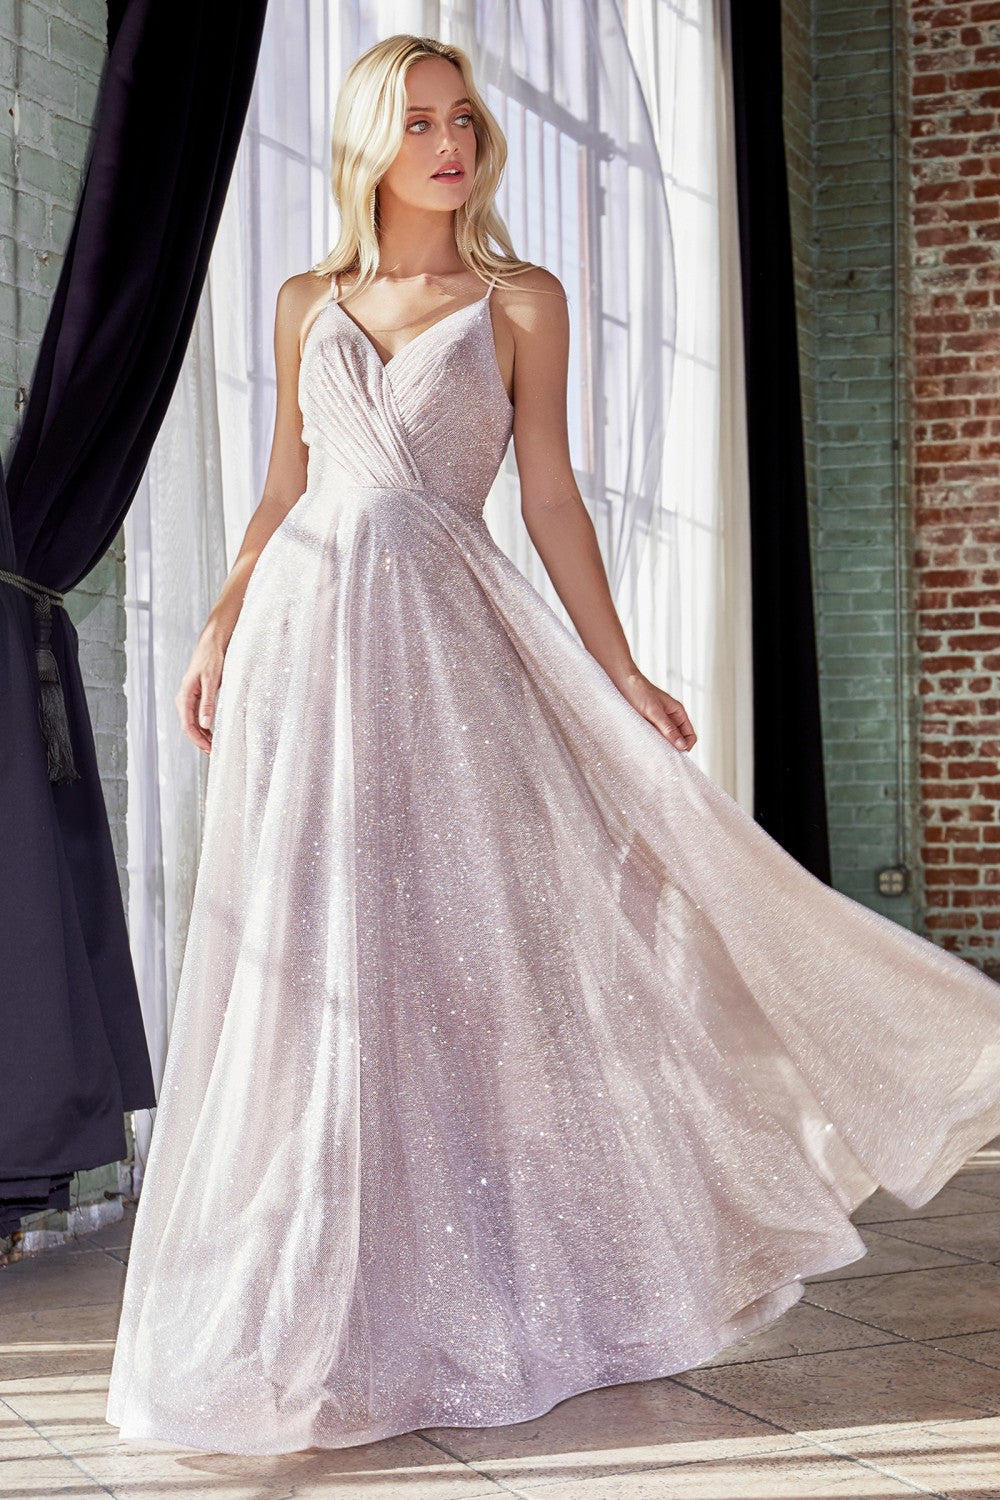 Cinderella Divine Chart I CD CD186 - Glitter Metallic A-line Prom Gown with Pleated Bodice and Deep V-Back - Diggz Prom